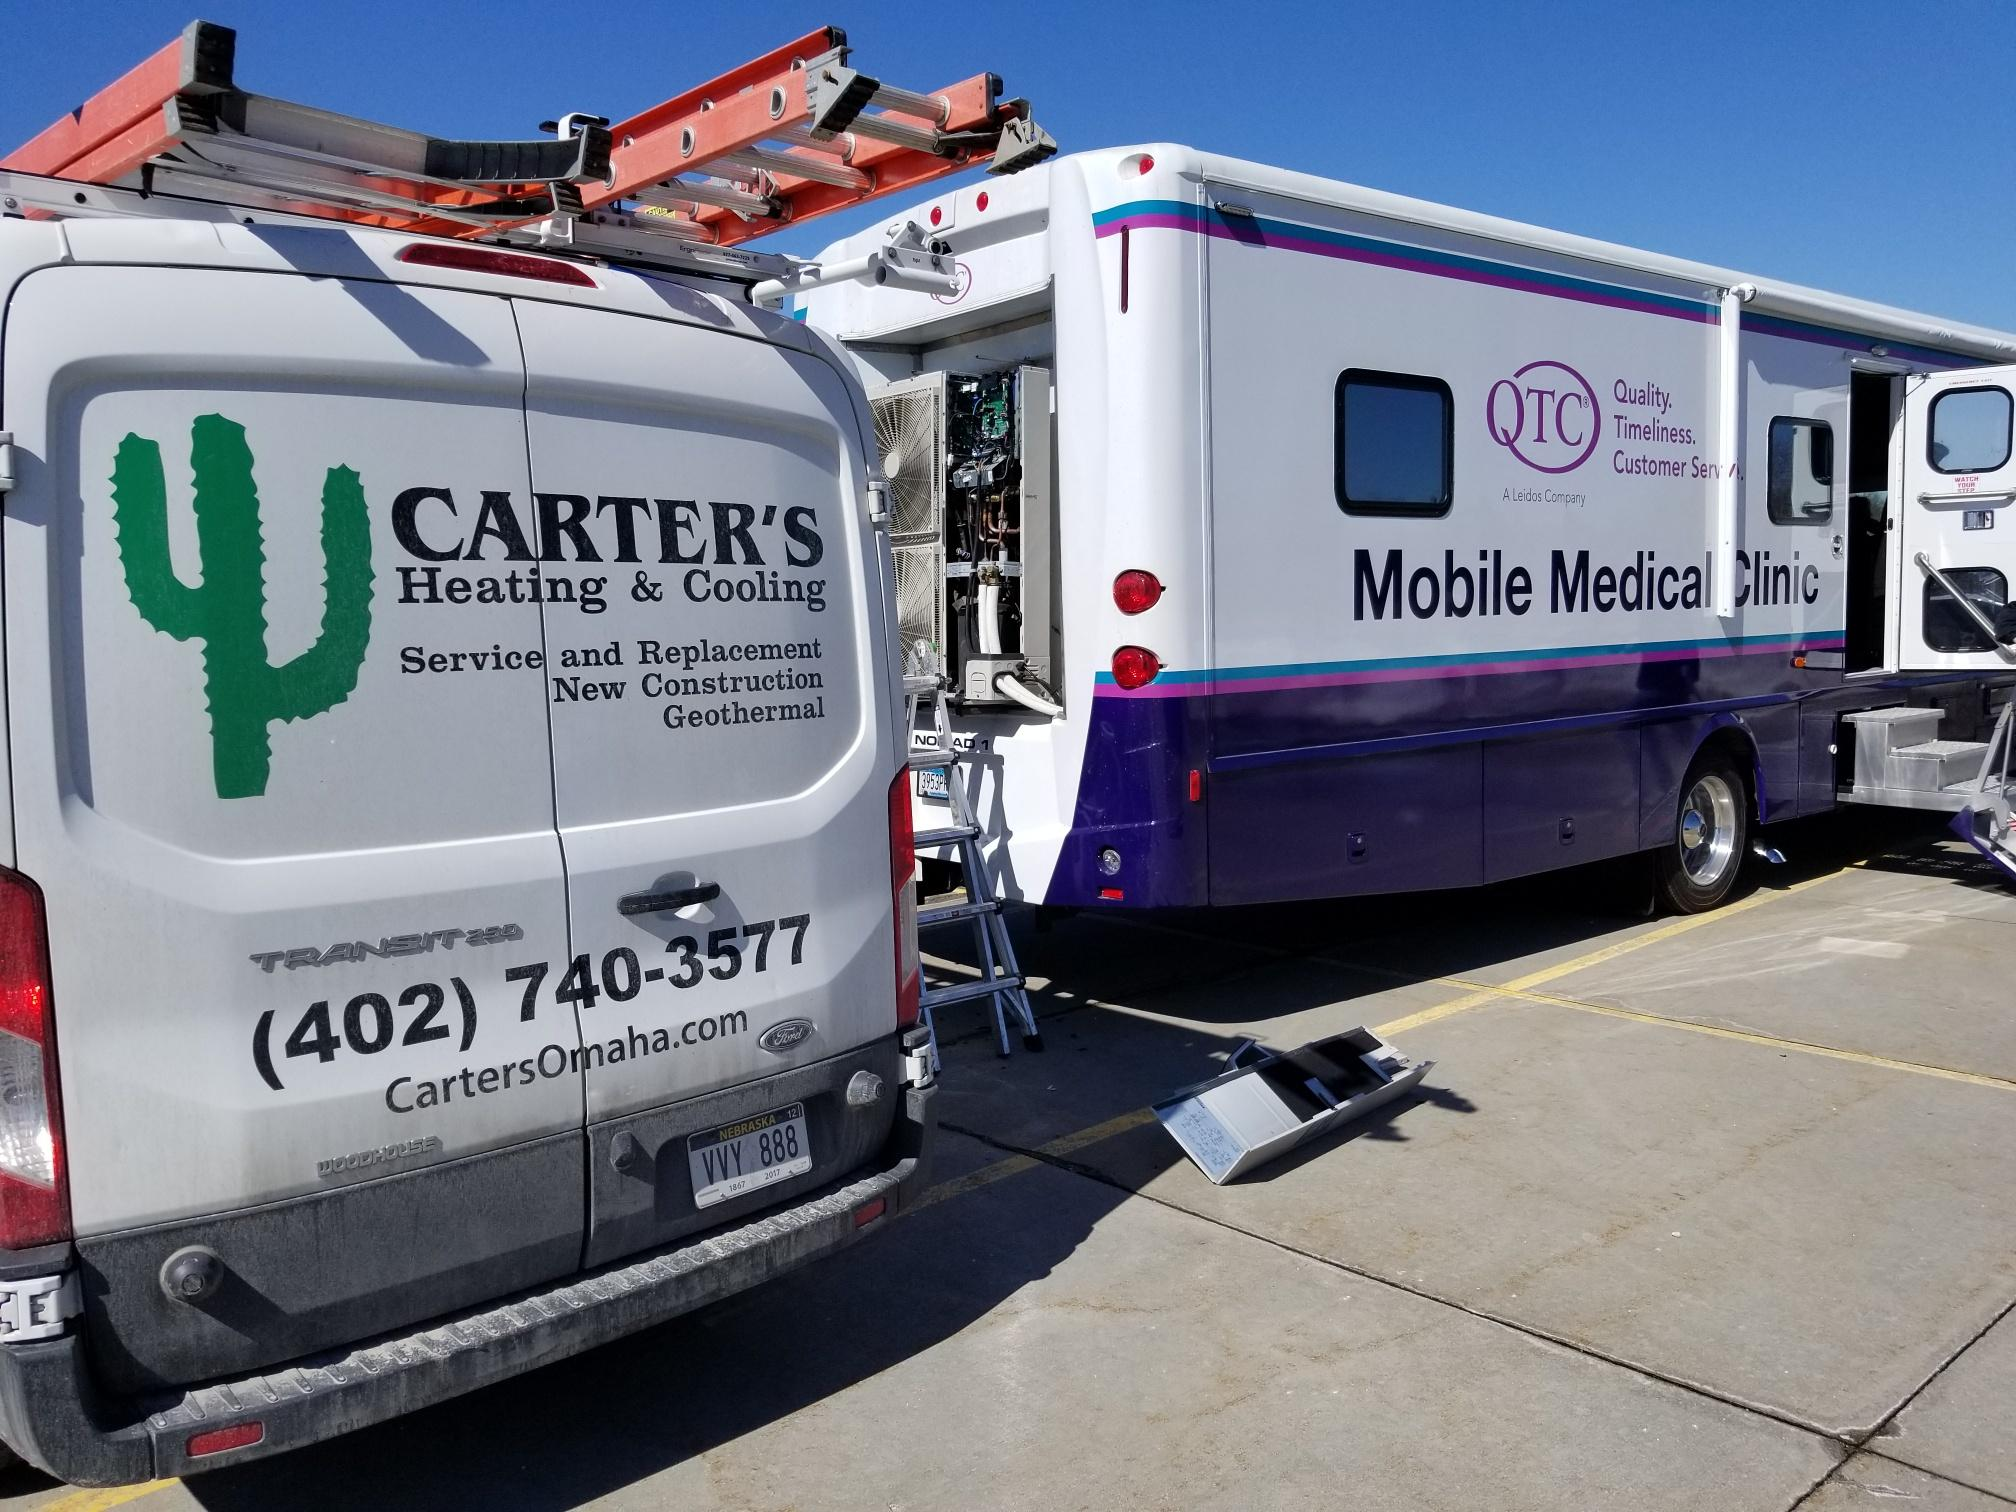 QTC Mobile Medical Clinic - Carter's Heating & Air Geothermal Systems